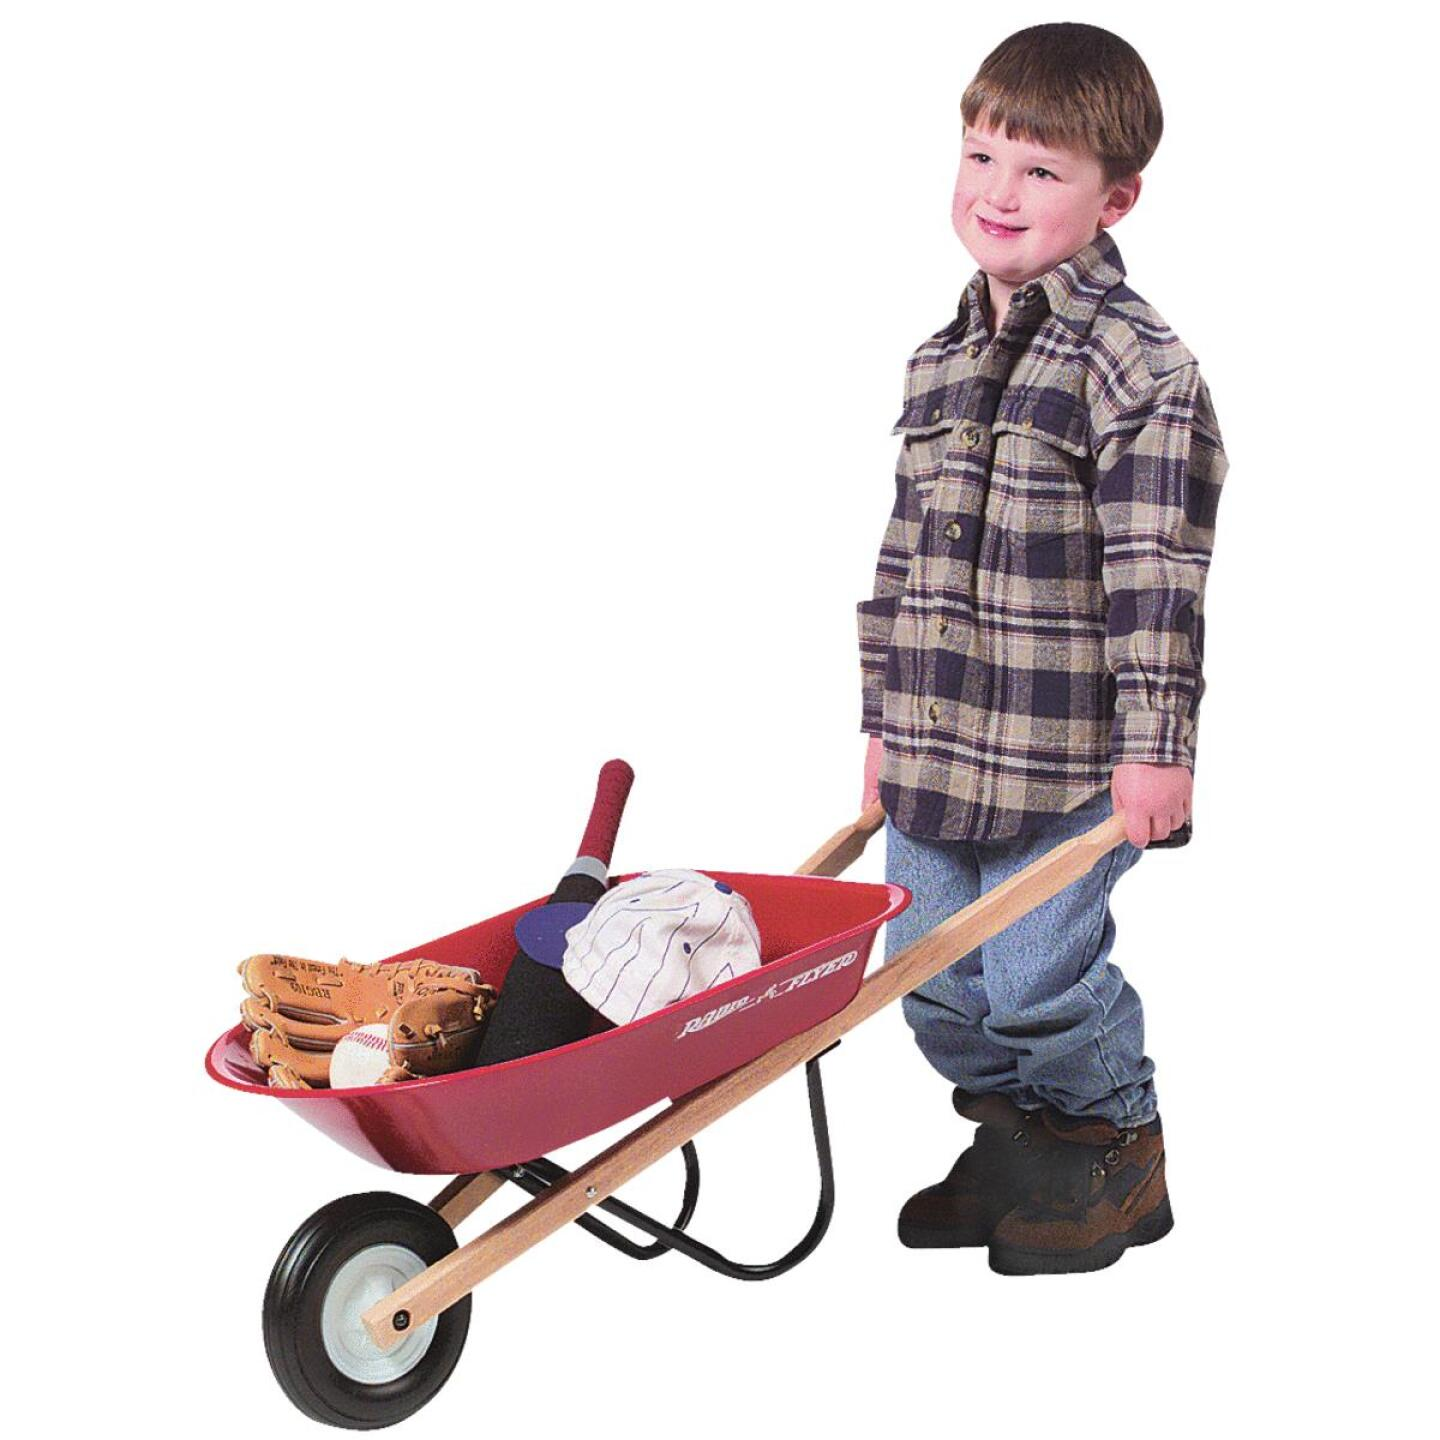 Radio Flyer 30 Lb. Steel Kid's Wheelbarrow Image 4